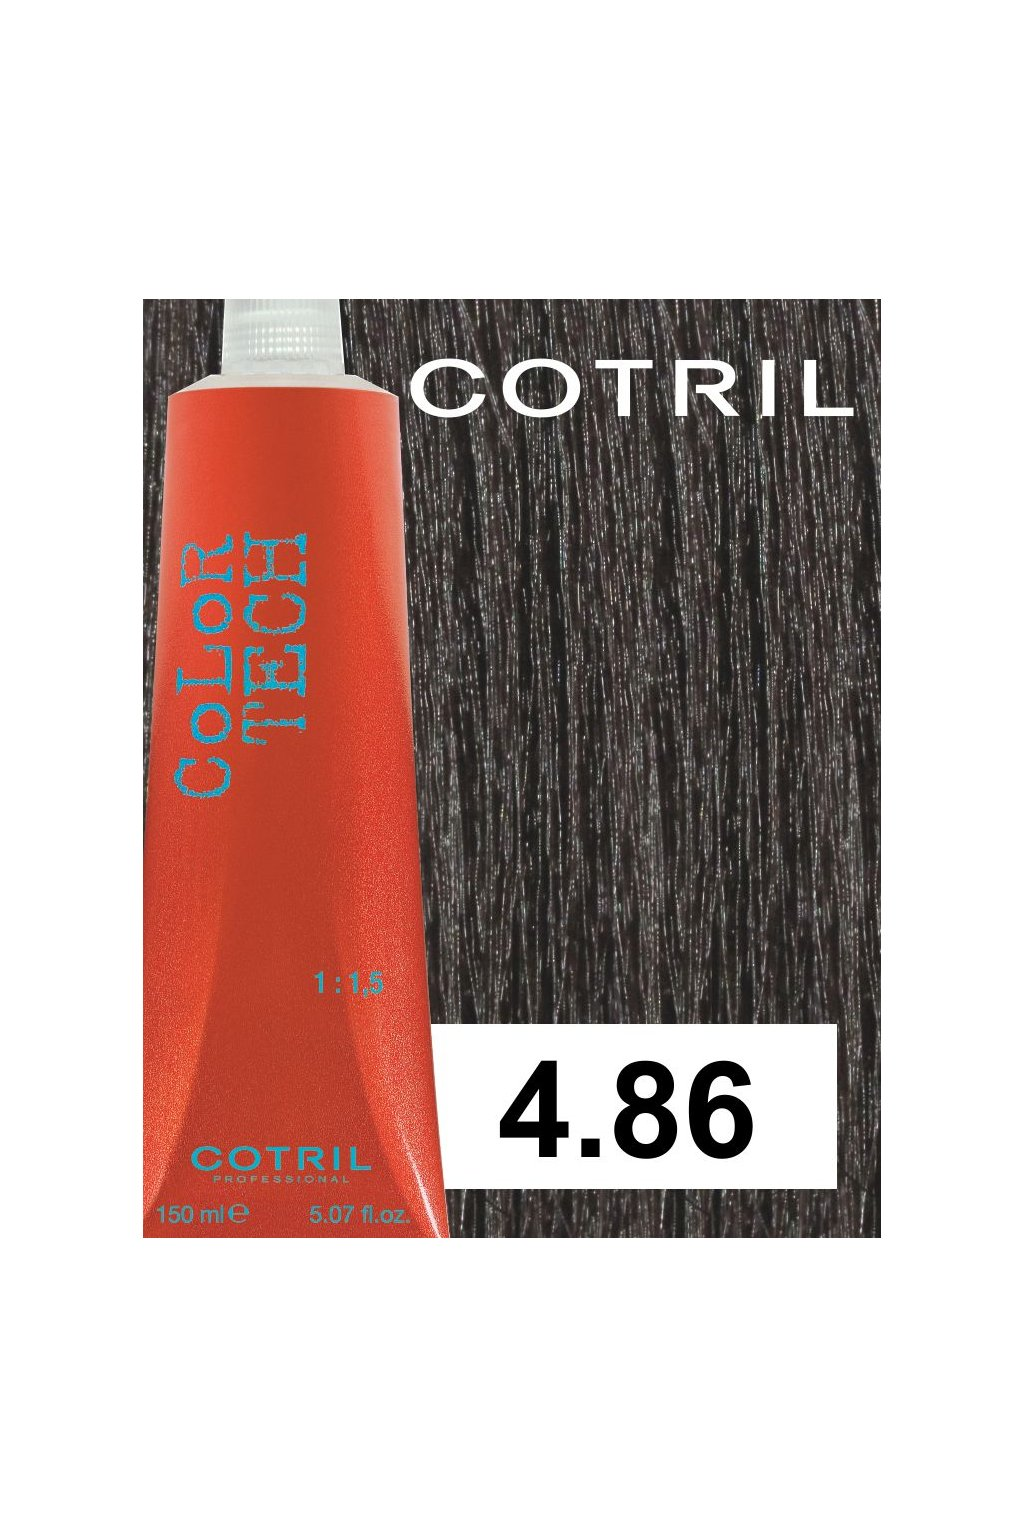 4 86 ct cotril